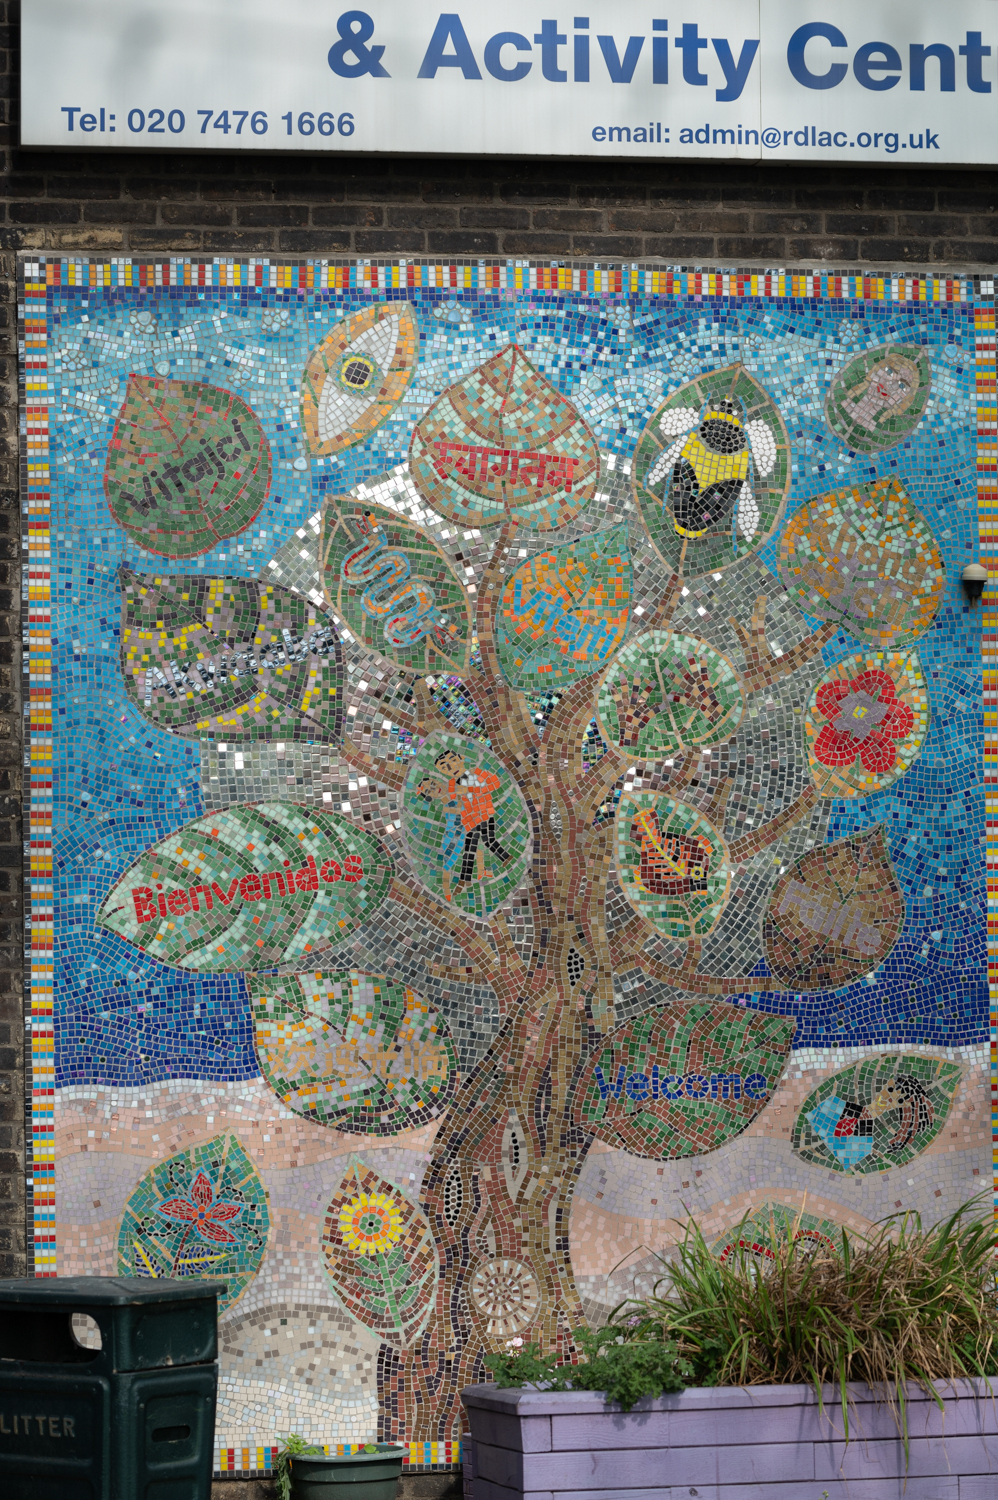 Mosaic of a tree